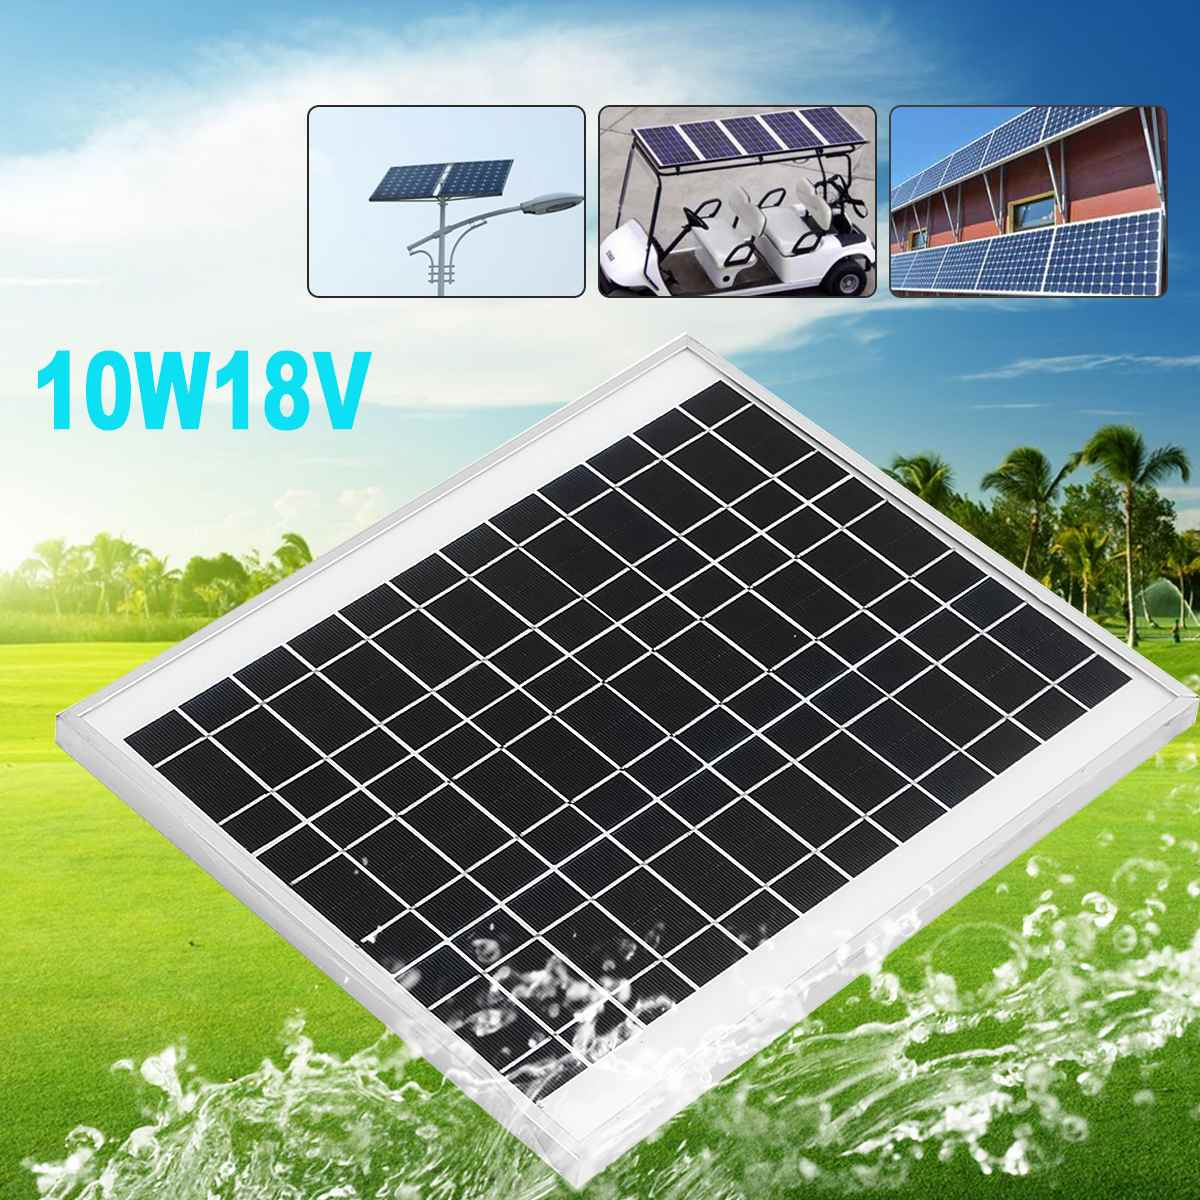 KINCO 10W 18V Monocrystalline Silicon Solar Panels High Conversion Rate And Output DIY Solar System For Car Battery RT Boat